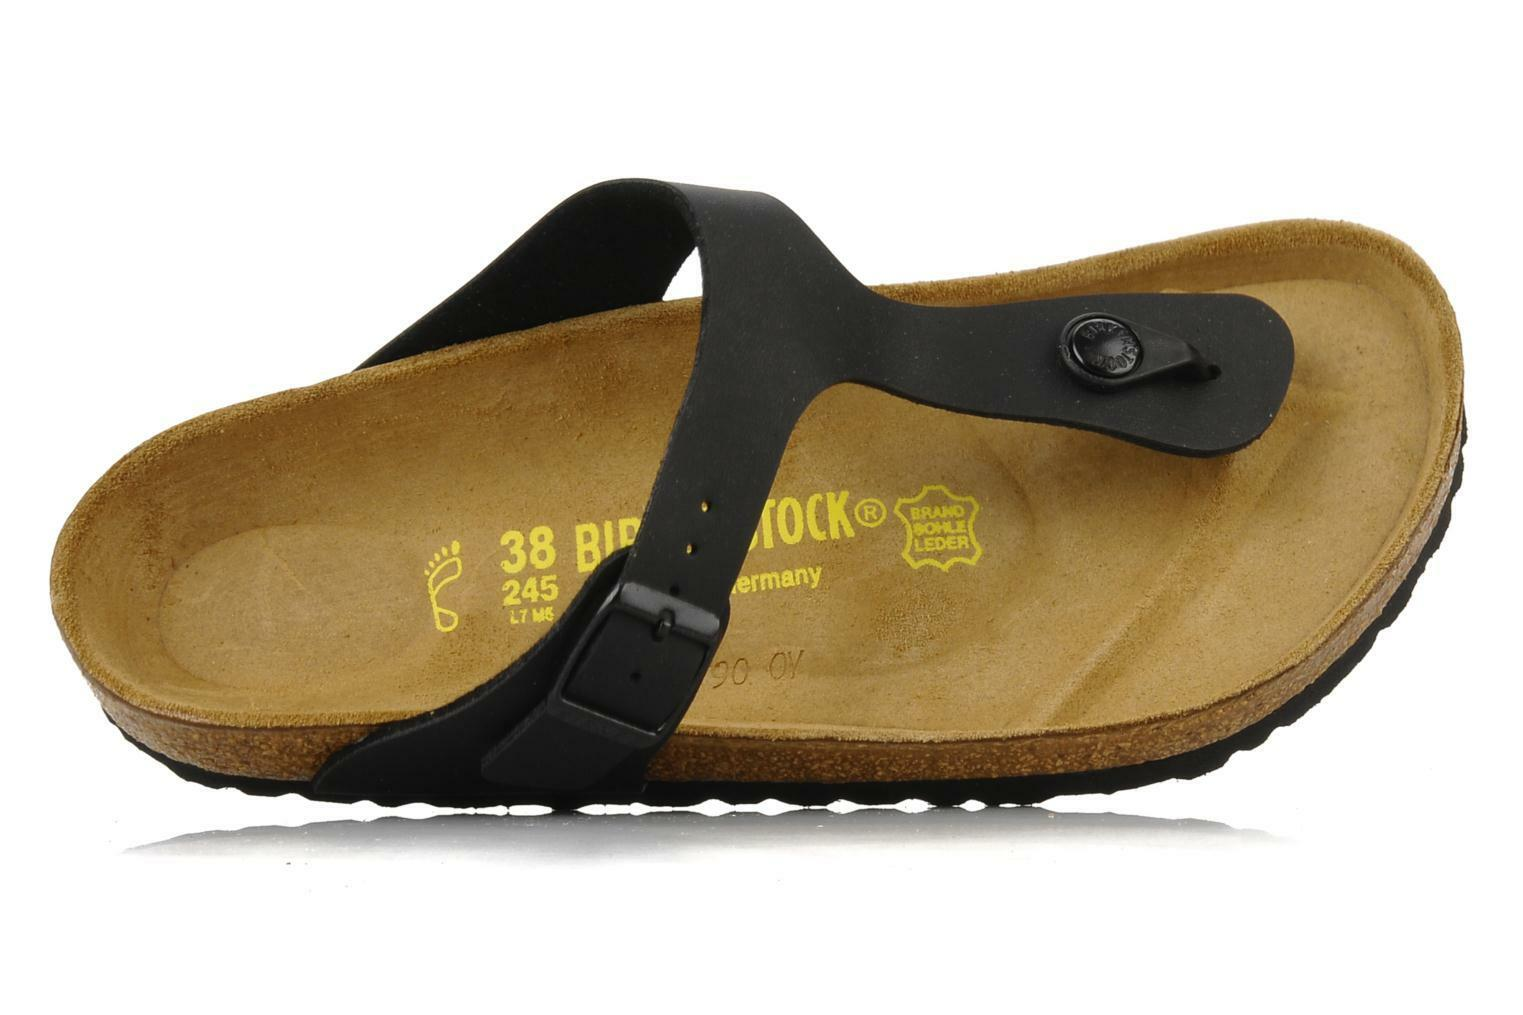 7559b46e7beb Birkenstock Gizeh Women s Sandal - Black for sale online